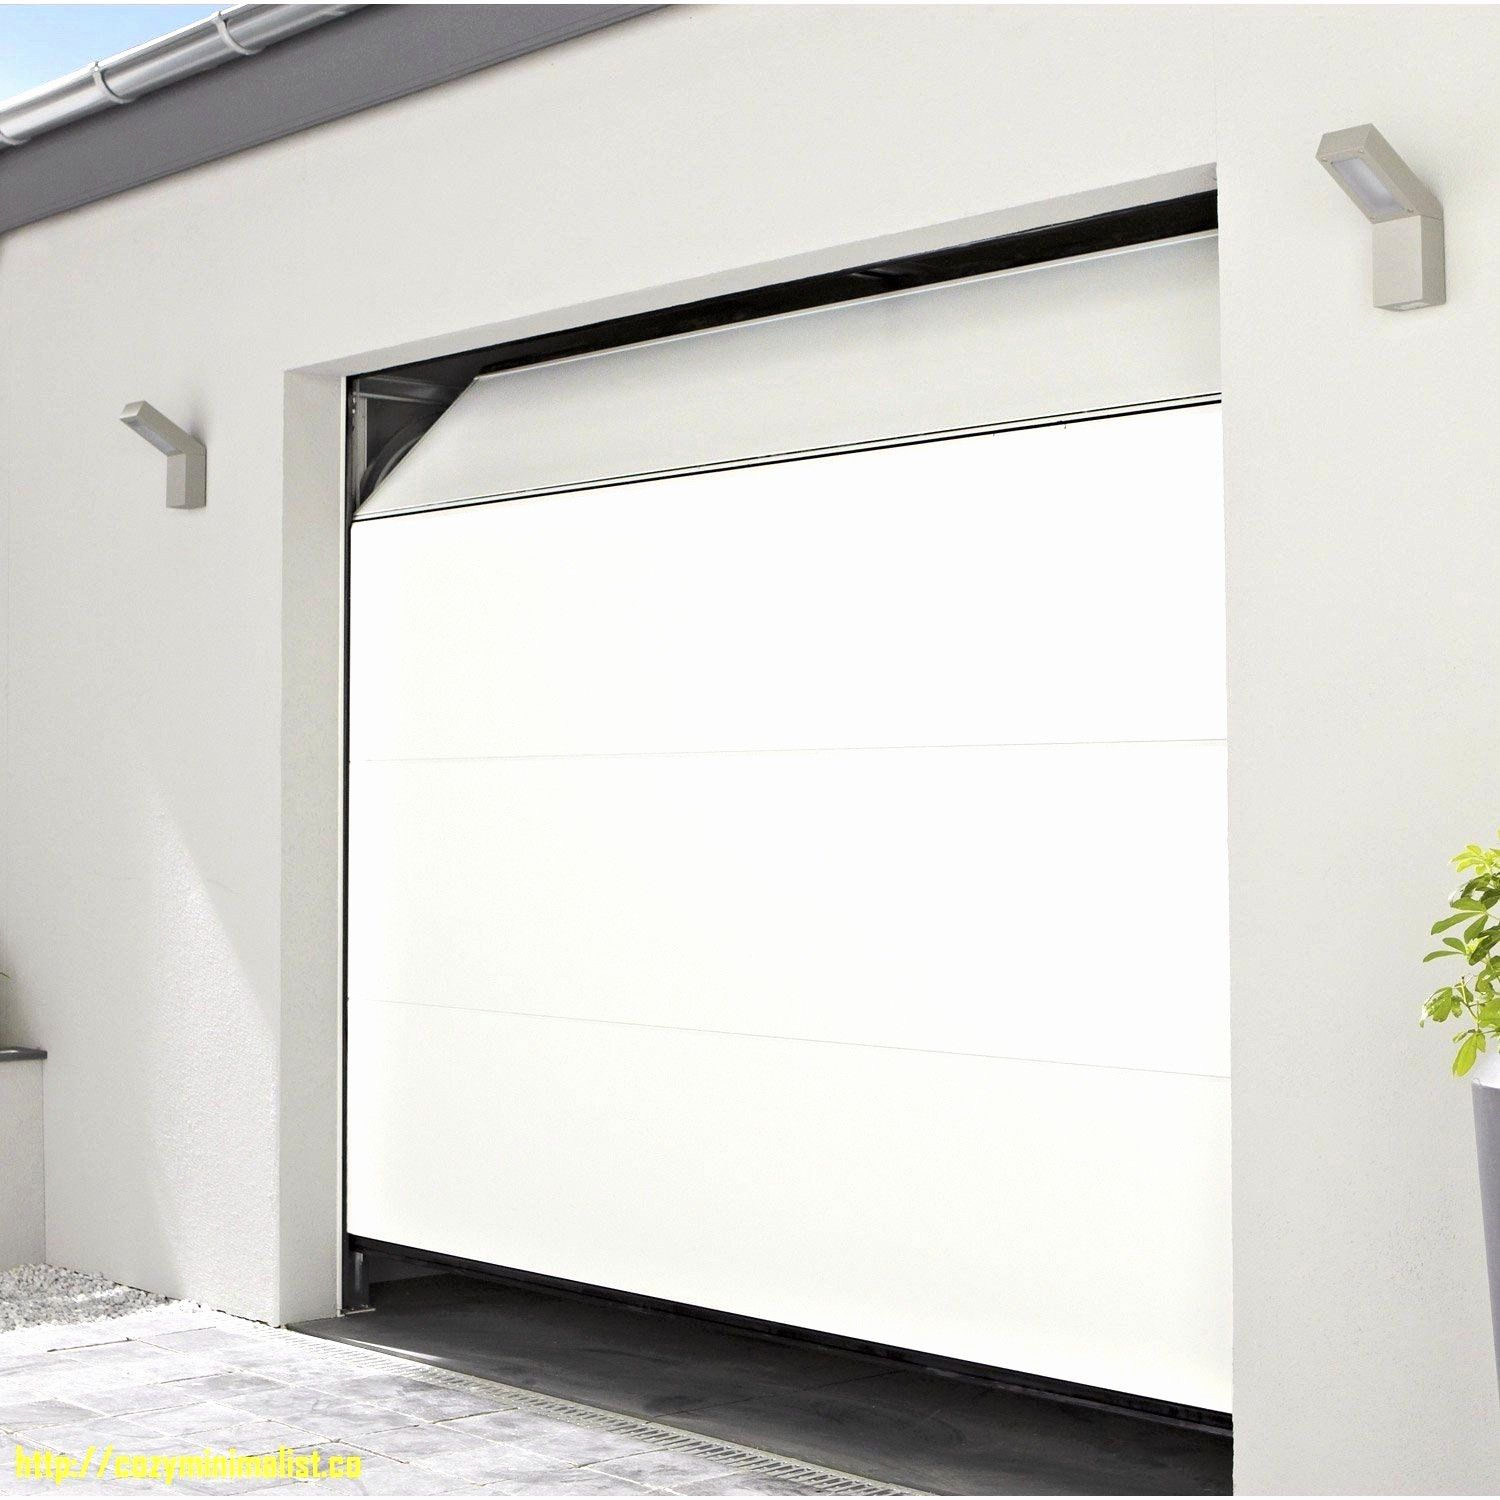 Awesome Porte Garage Coulissante Brico Depot Interior Design Bedroom Bedroom Interior Interior